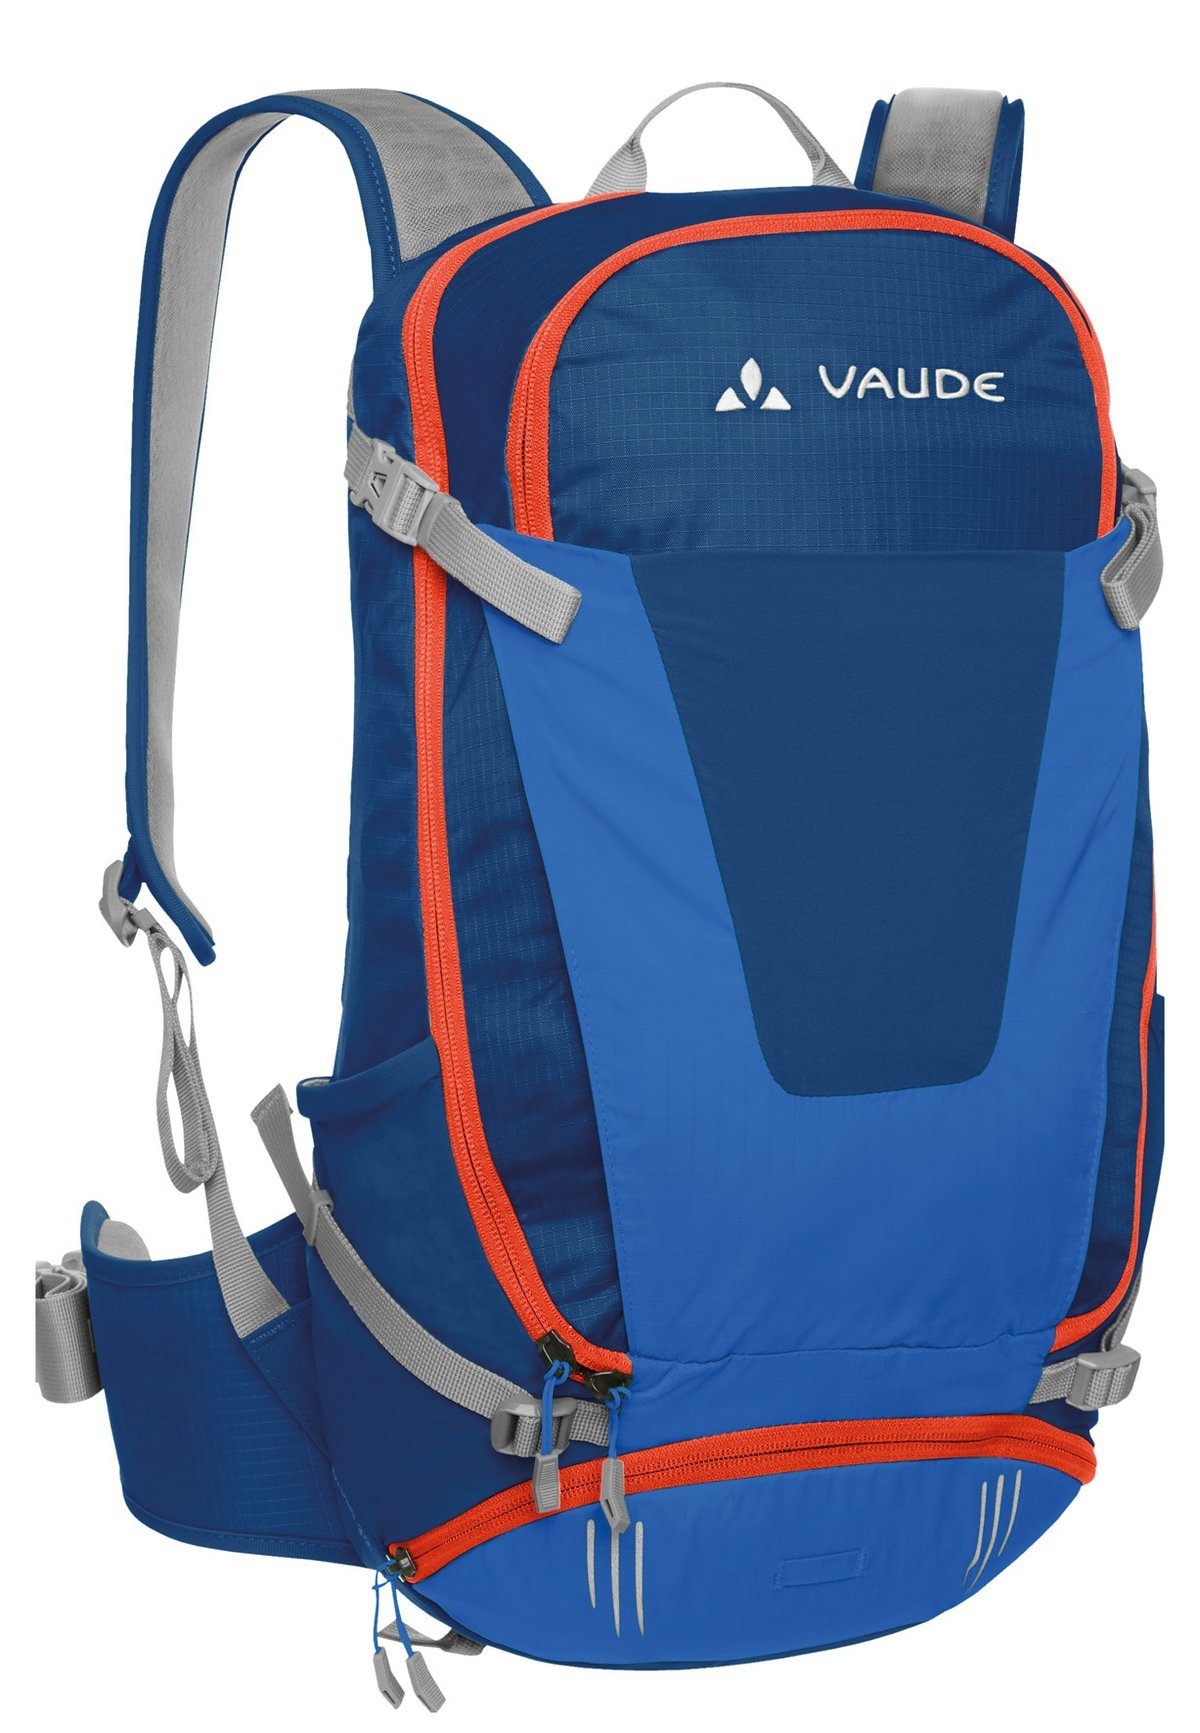 test vaude moab 20l bike rucksack. Black Bedroom Furniture Sets. Home Design Ideas